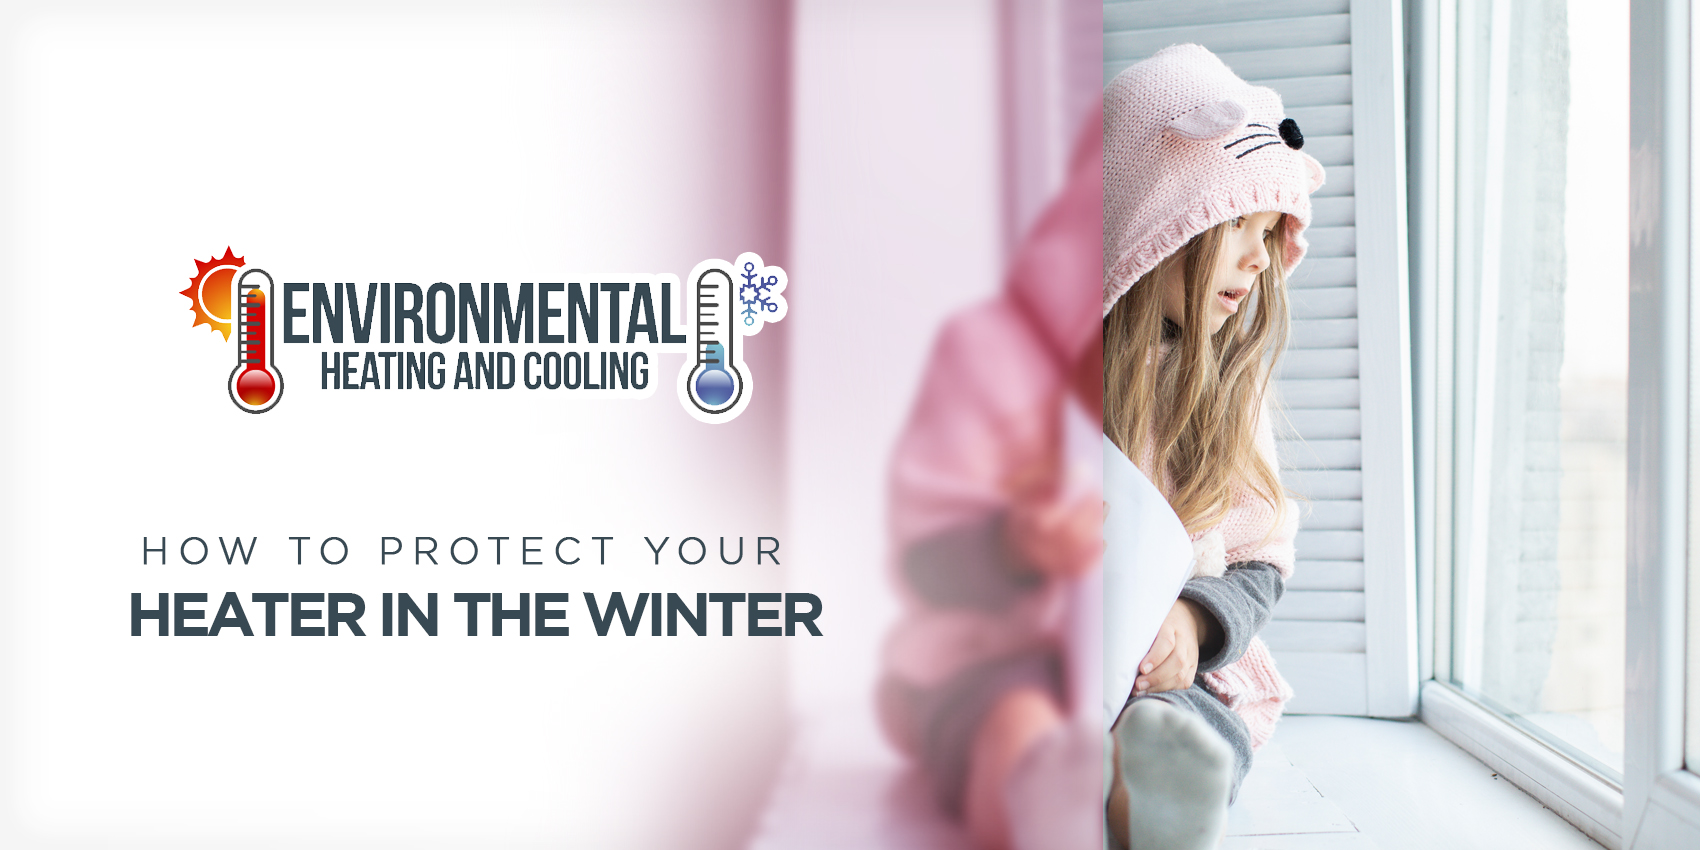 How To Protect Your Heater In The Winter